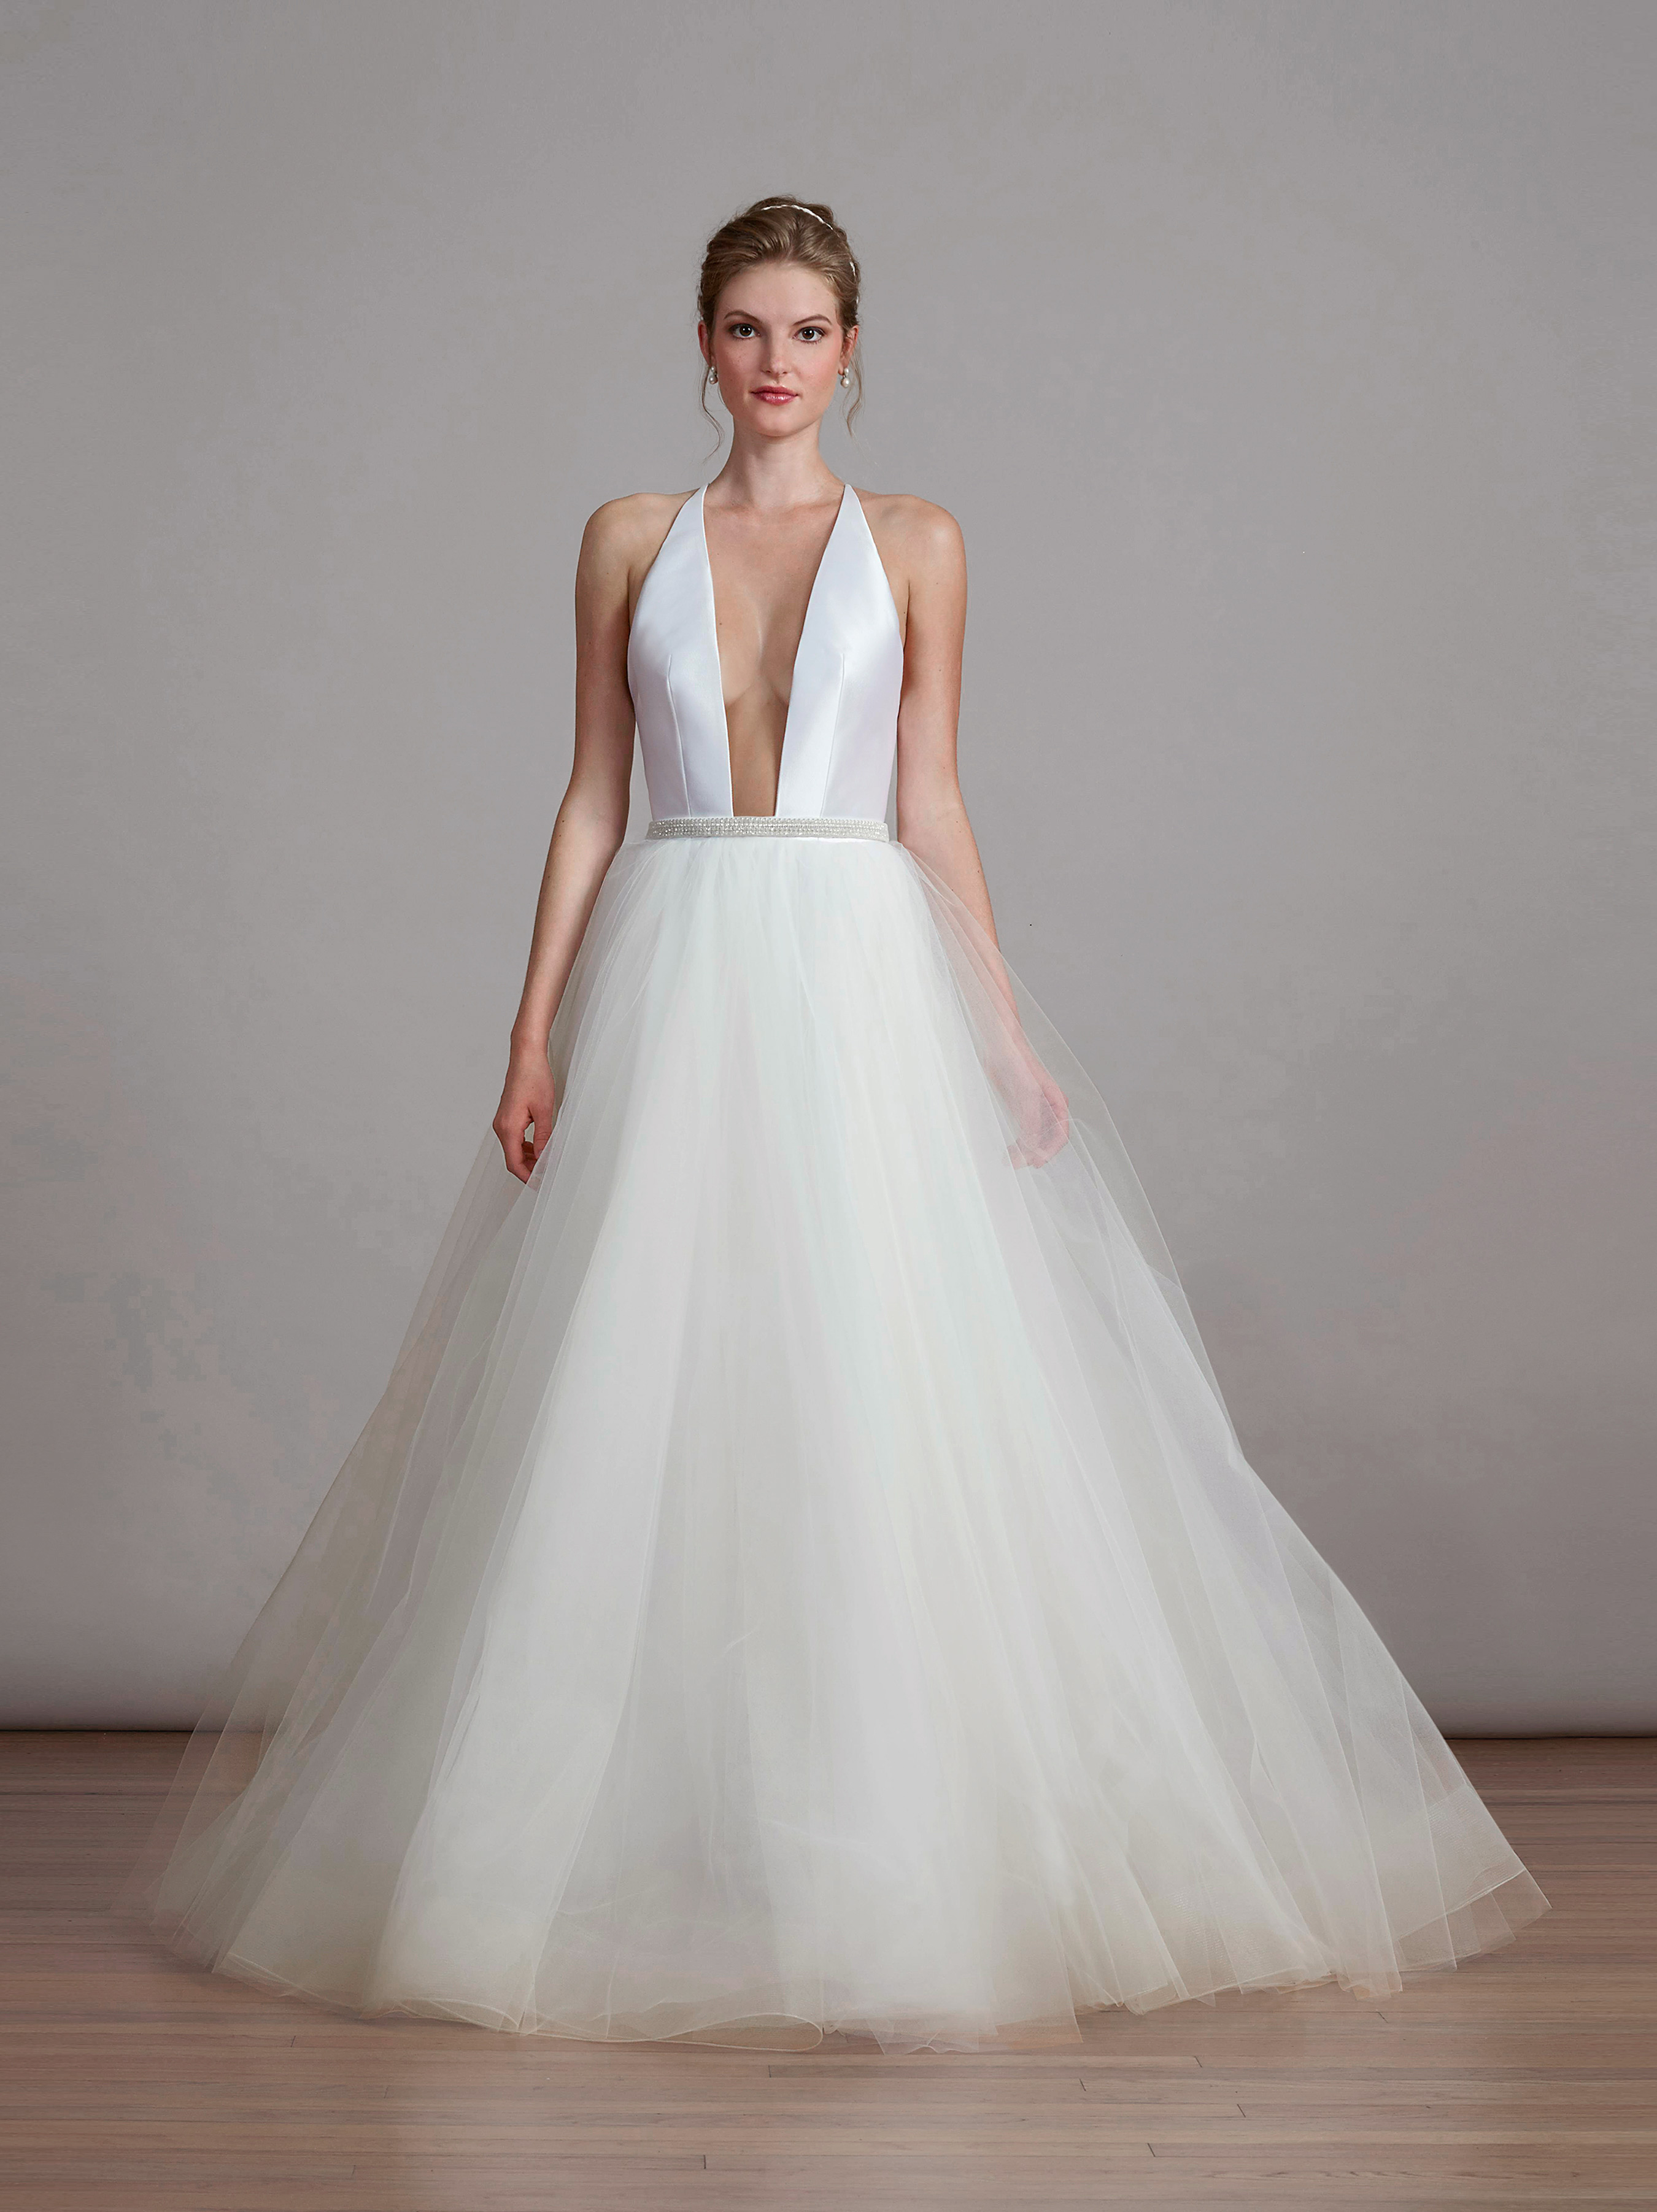 liancarlo halter wedding dress with tulle